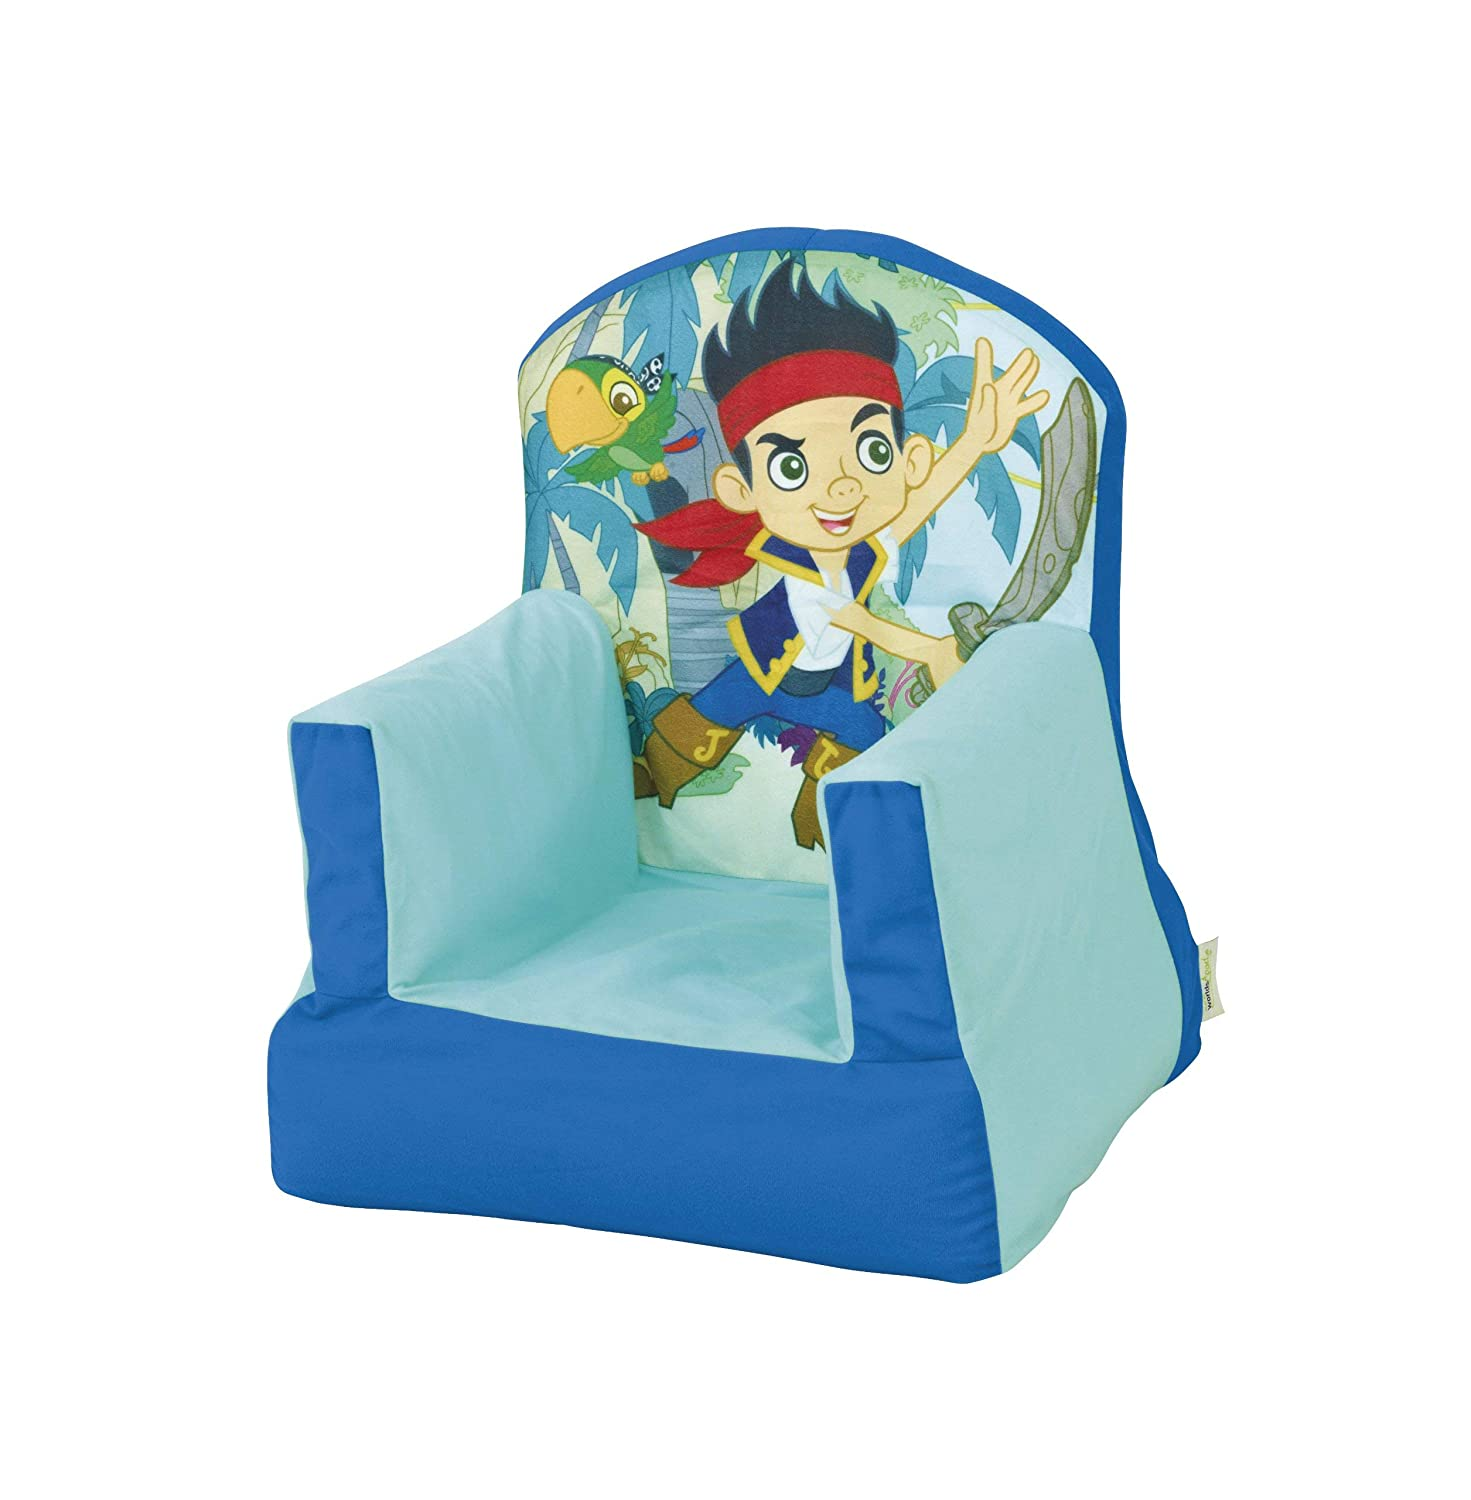 Excellent Disney Junior Jake And The Neverland Pirates Inflatable Chair For Kids Download Free Architecture Designs Scobabritishbridgeorg